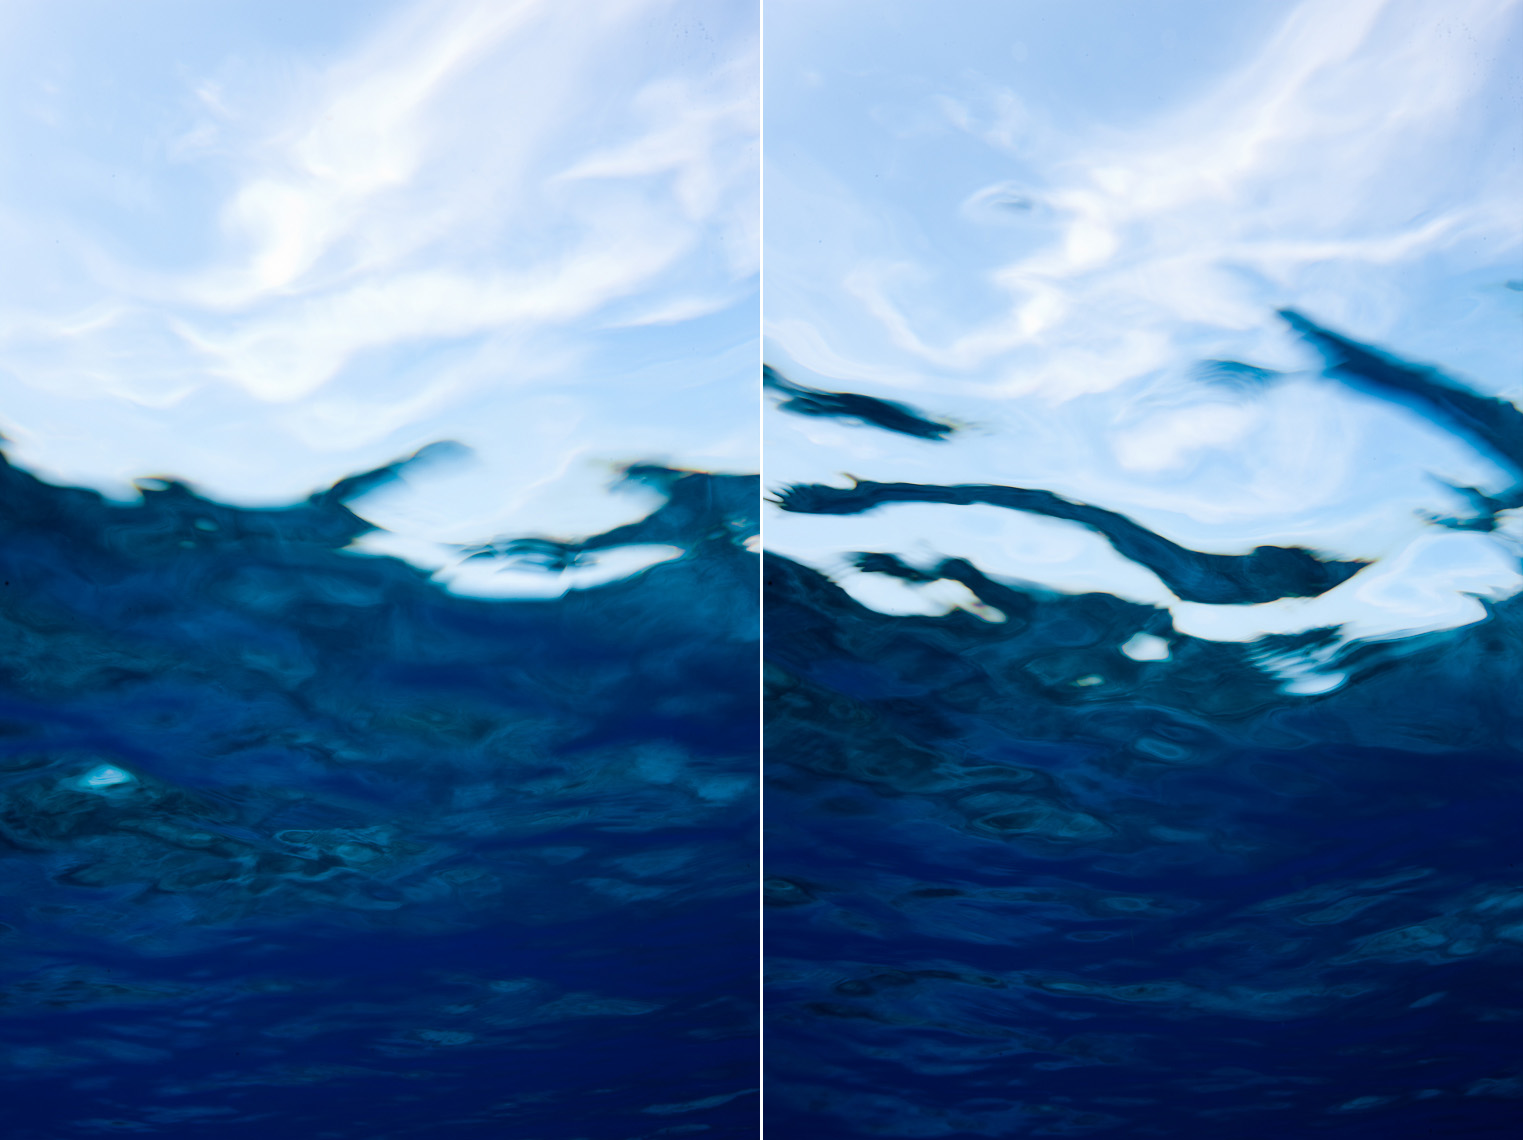 Tim Calver - Underwater Photography